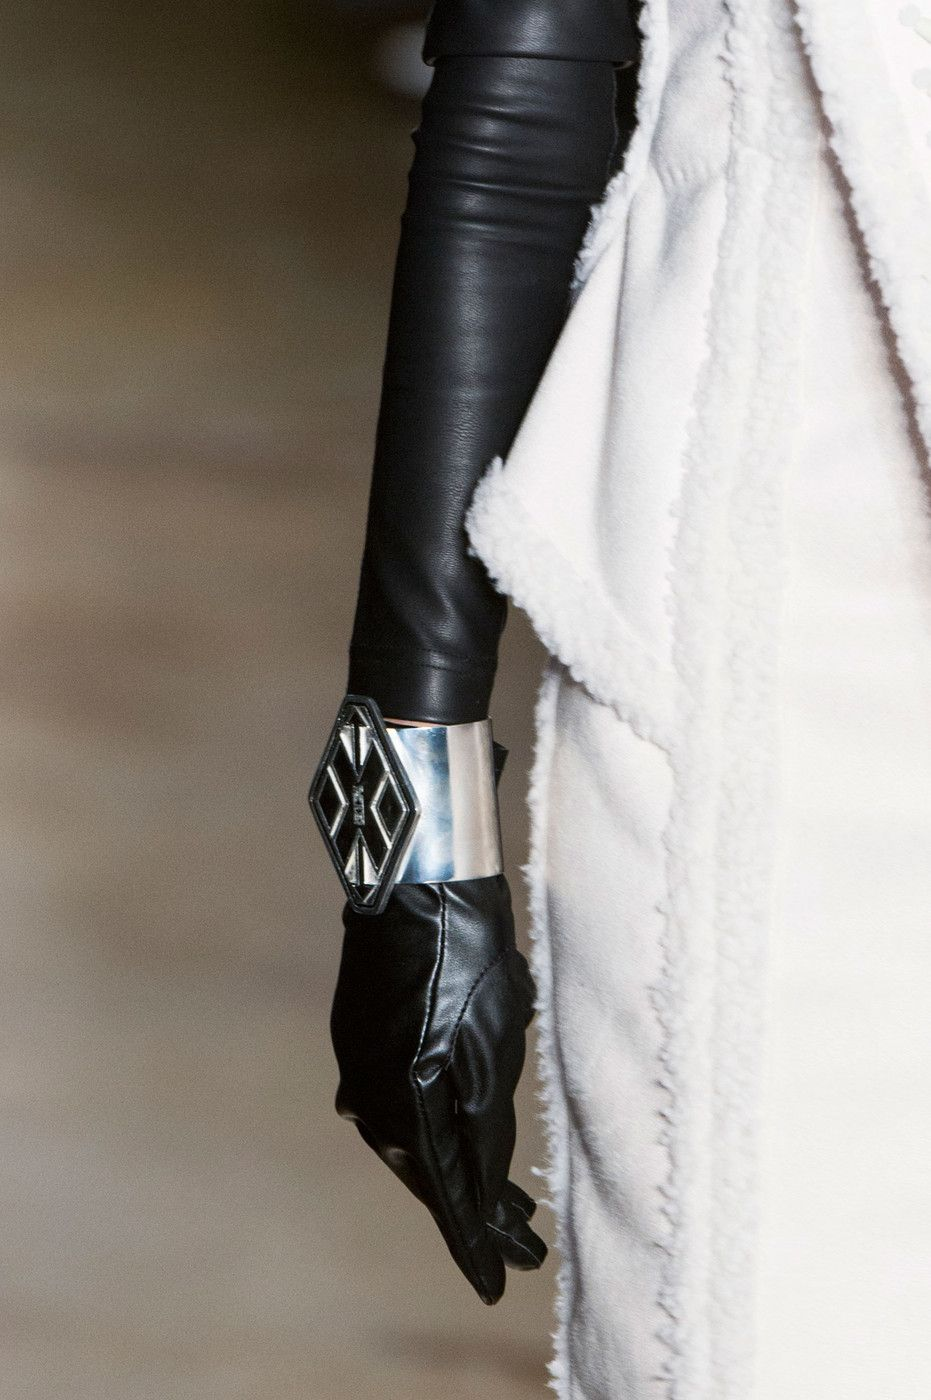 Ktz Fall 2015 Runway Pictures - StyleBistro